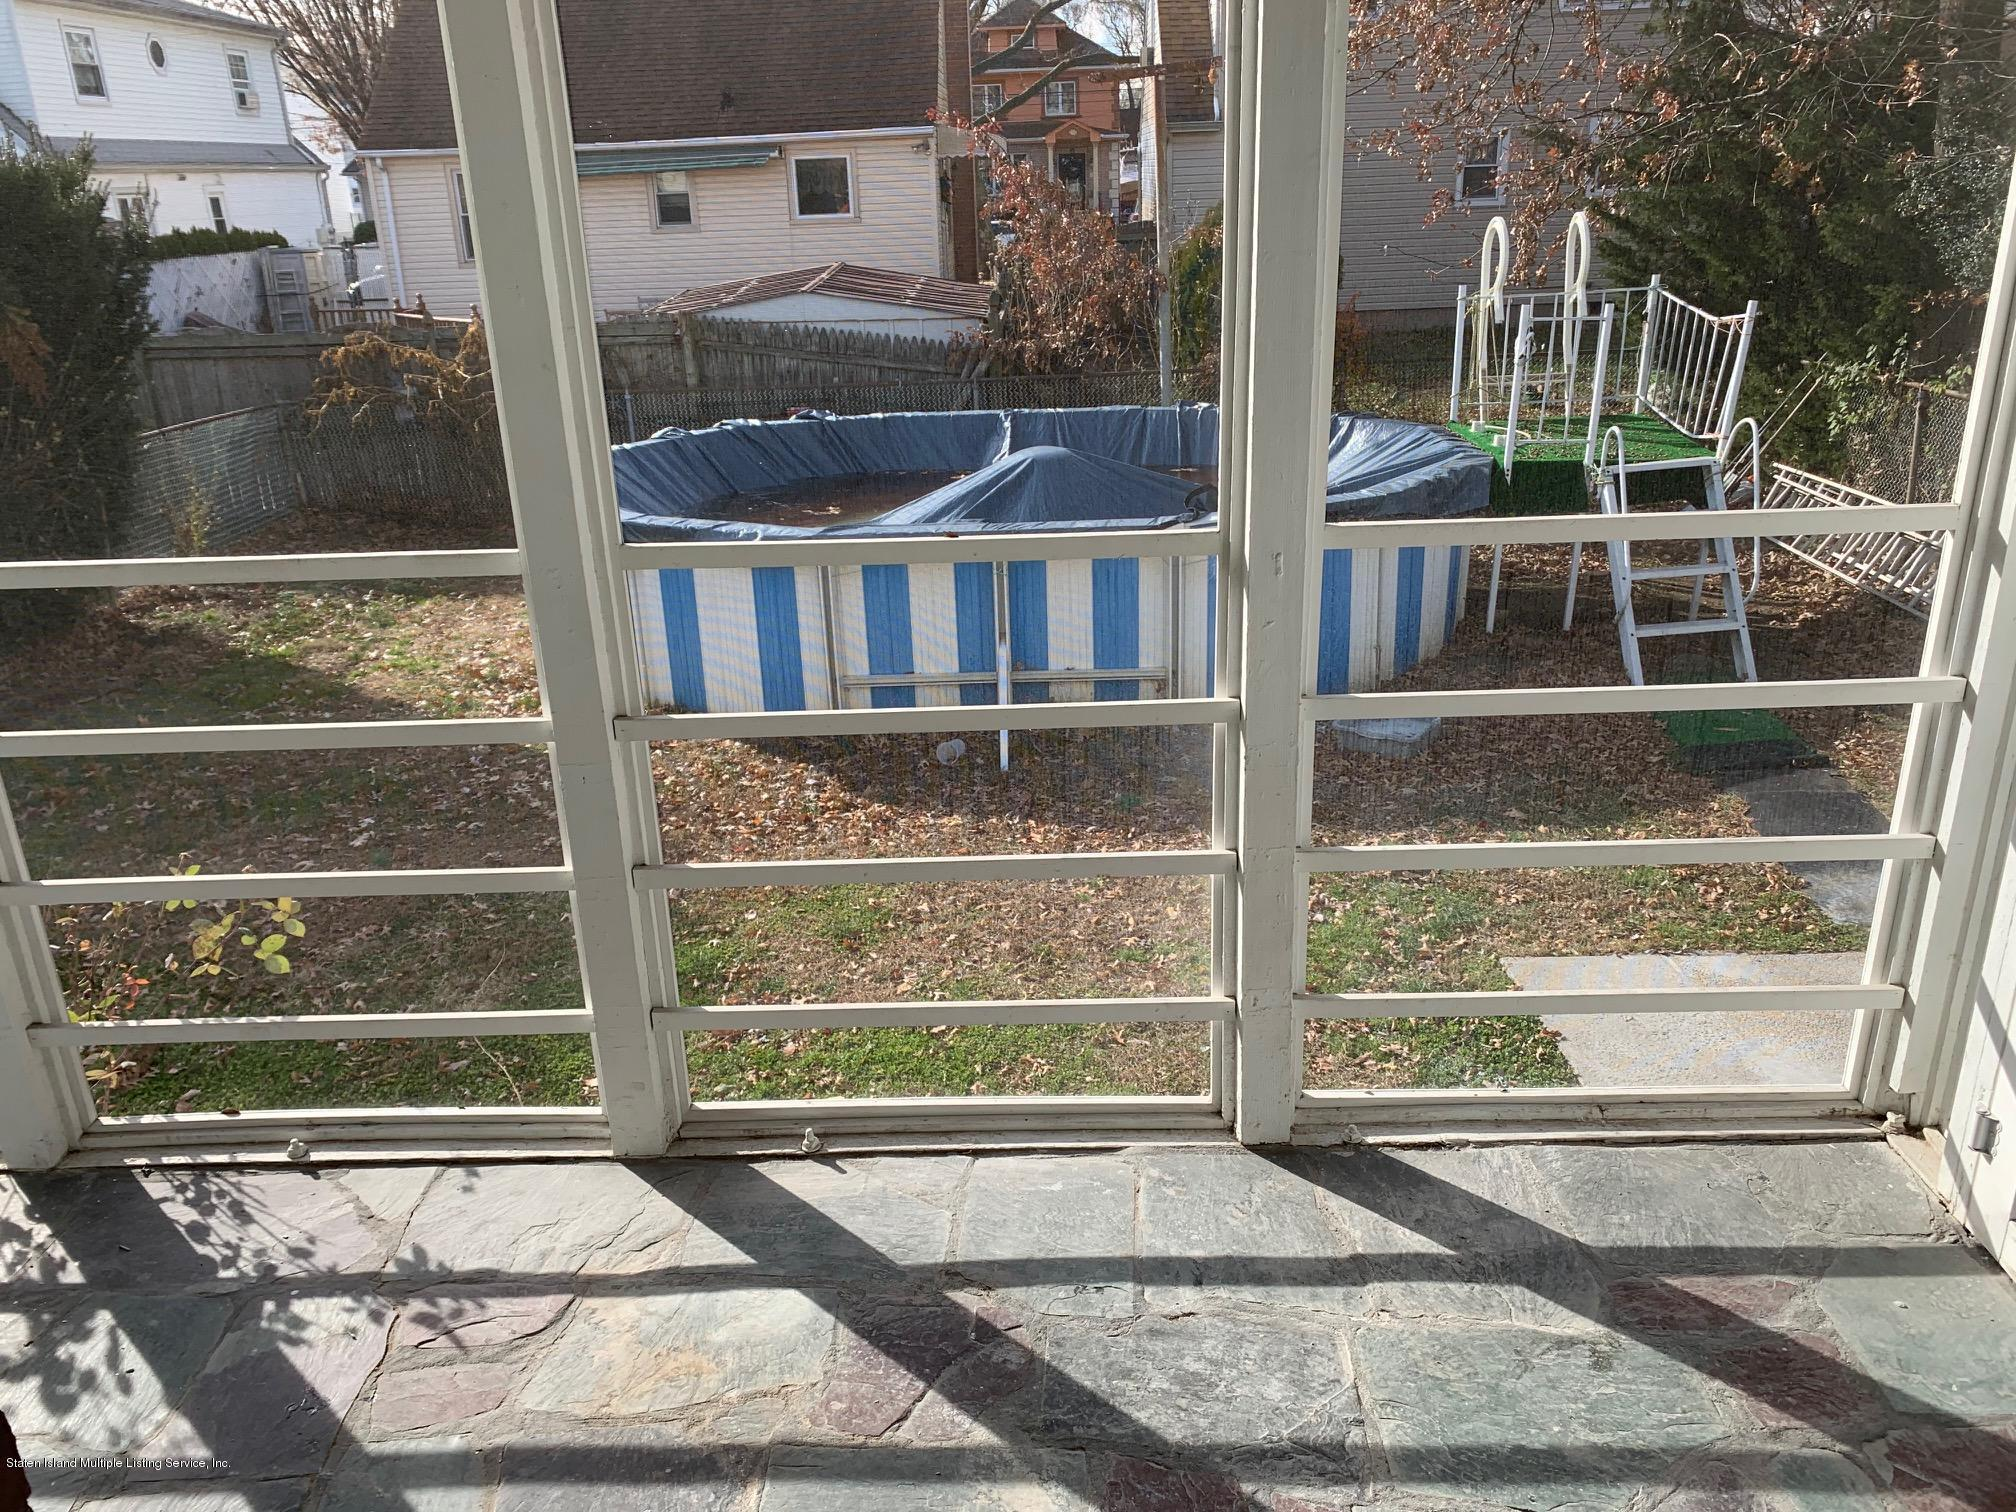 290 Locust Avenue,Staten Island,New York,10306,United States,4 Bedrooms Bedrooms,7 Rooms Rooms,3 BathroomsBathrooms,Res-Rental,Locust,1134326